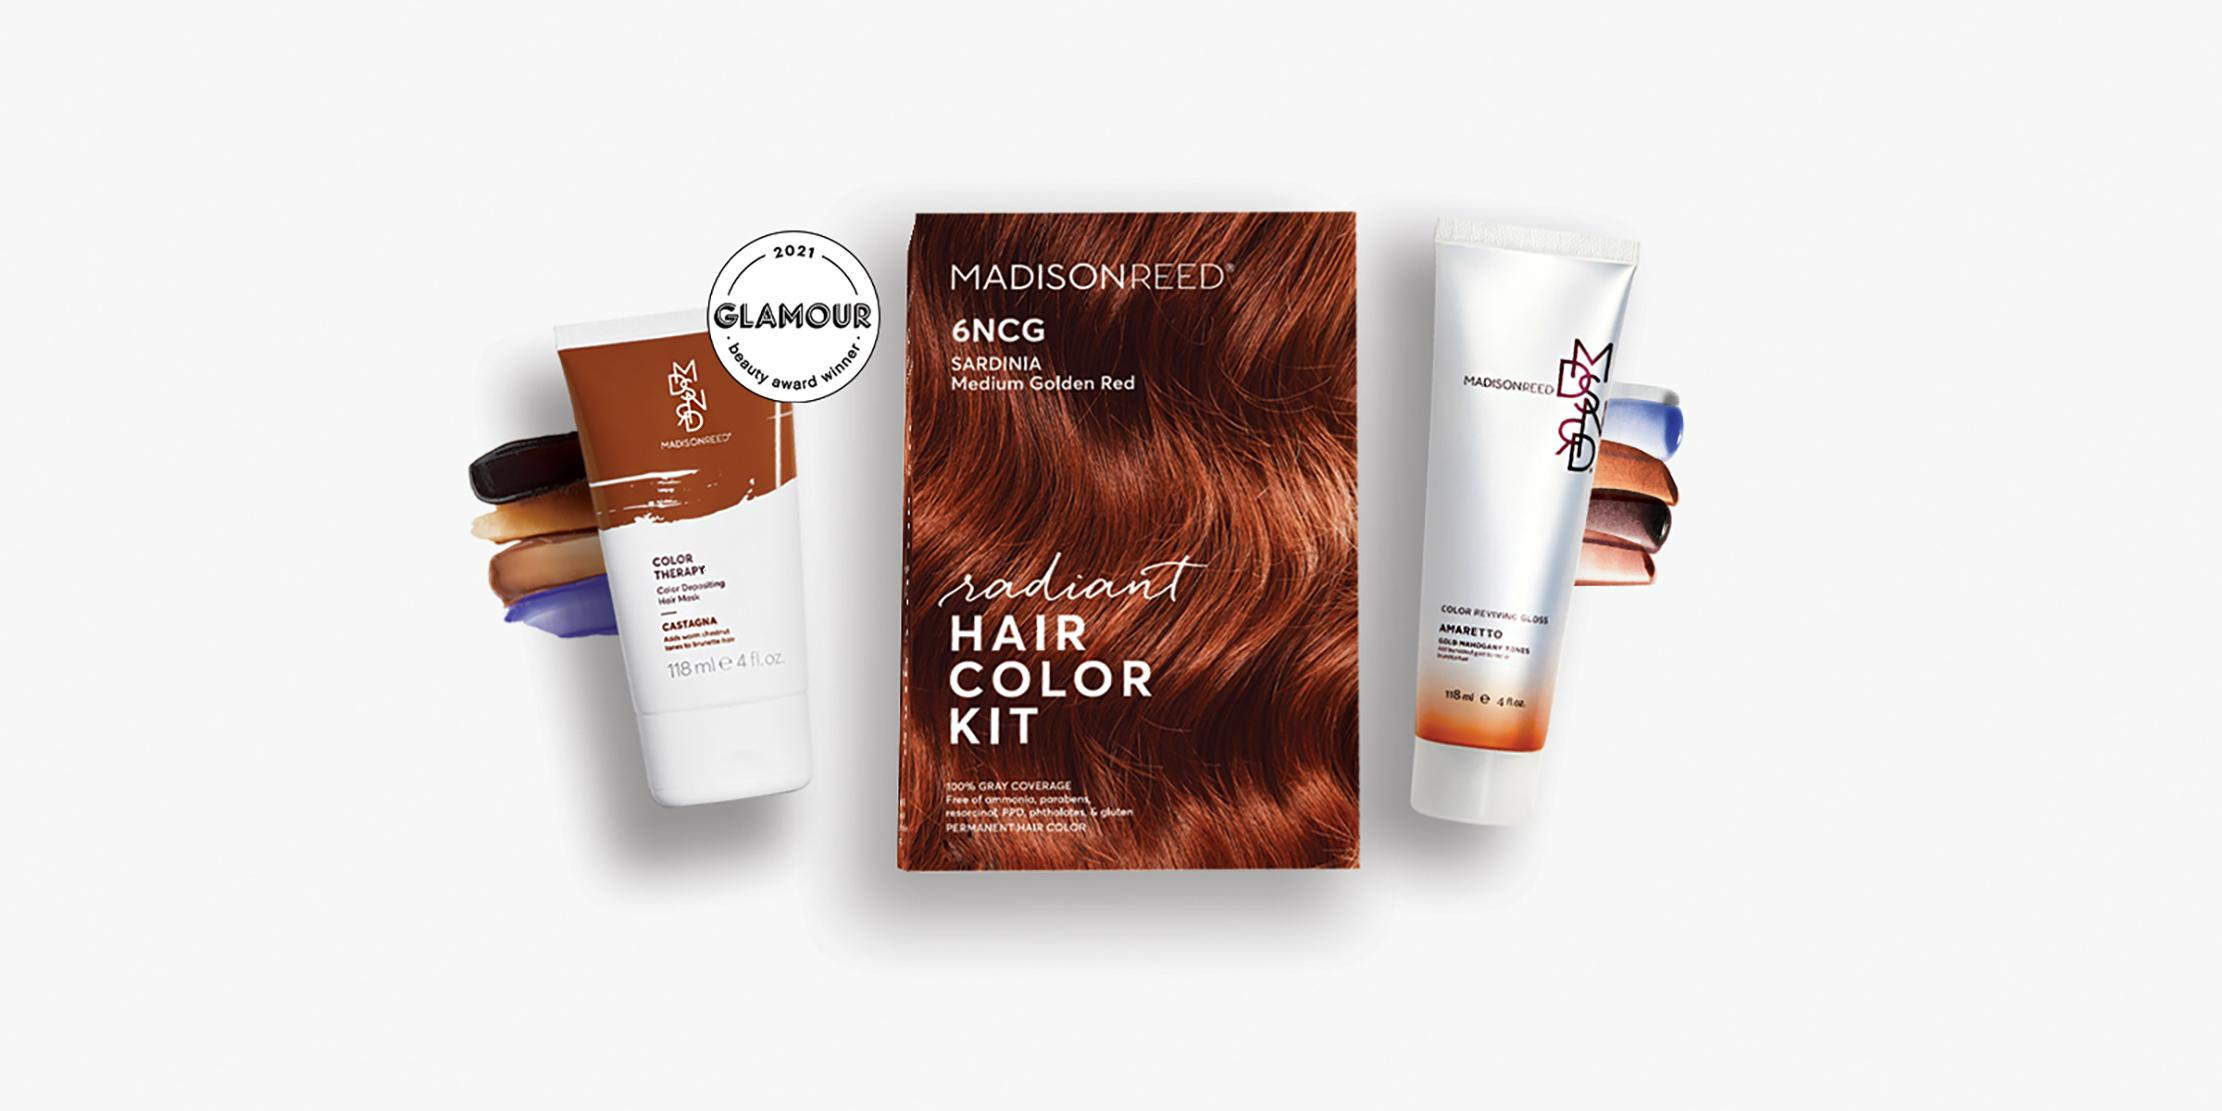 BLOG.04.14.21_Best Selling Trio for Beautiful Hair Color